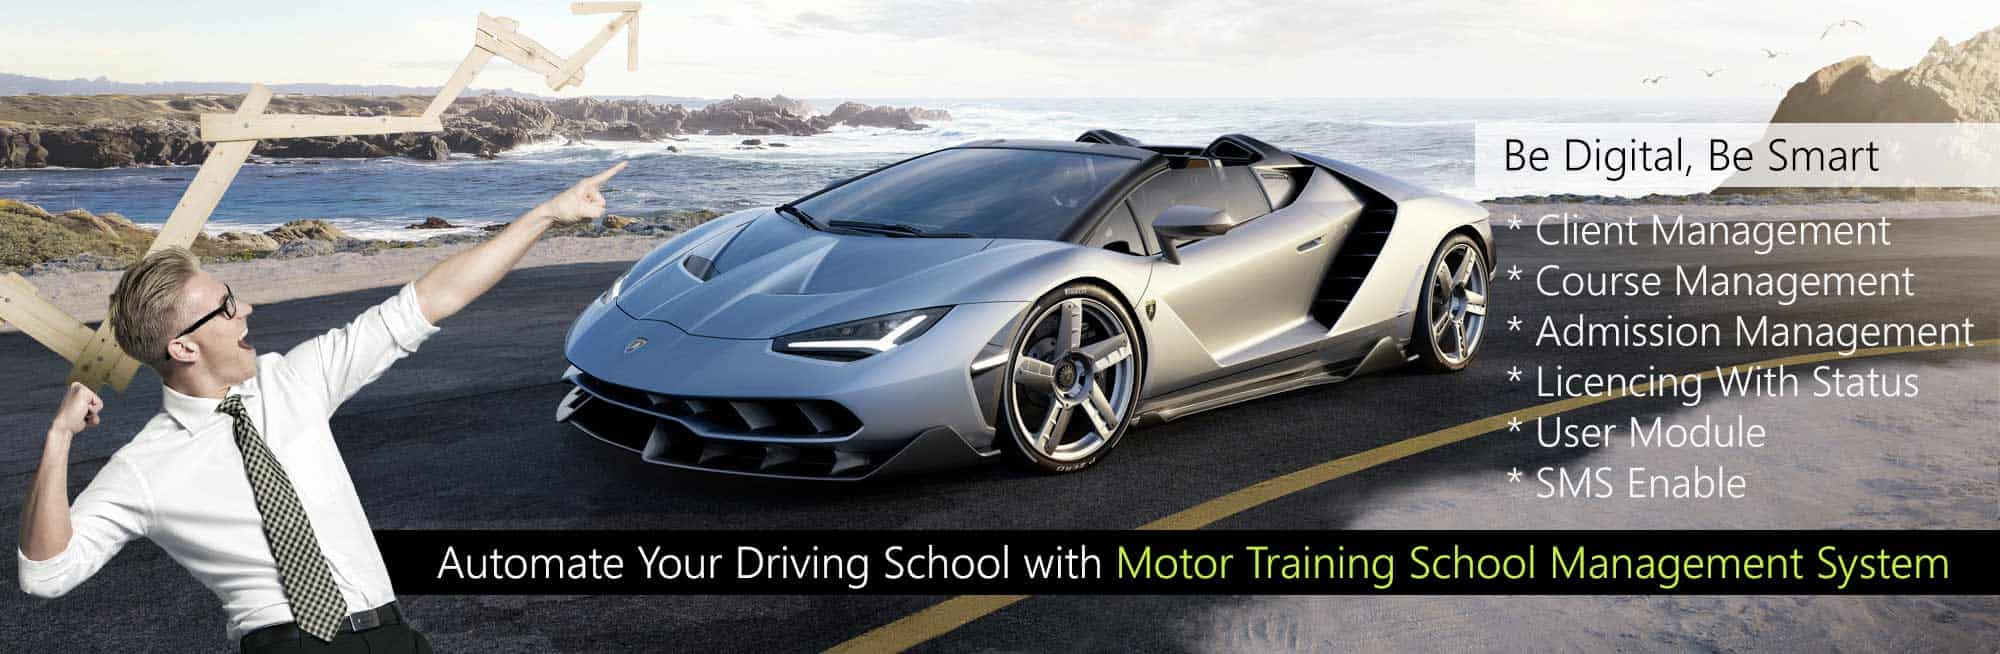 Driving School Software